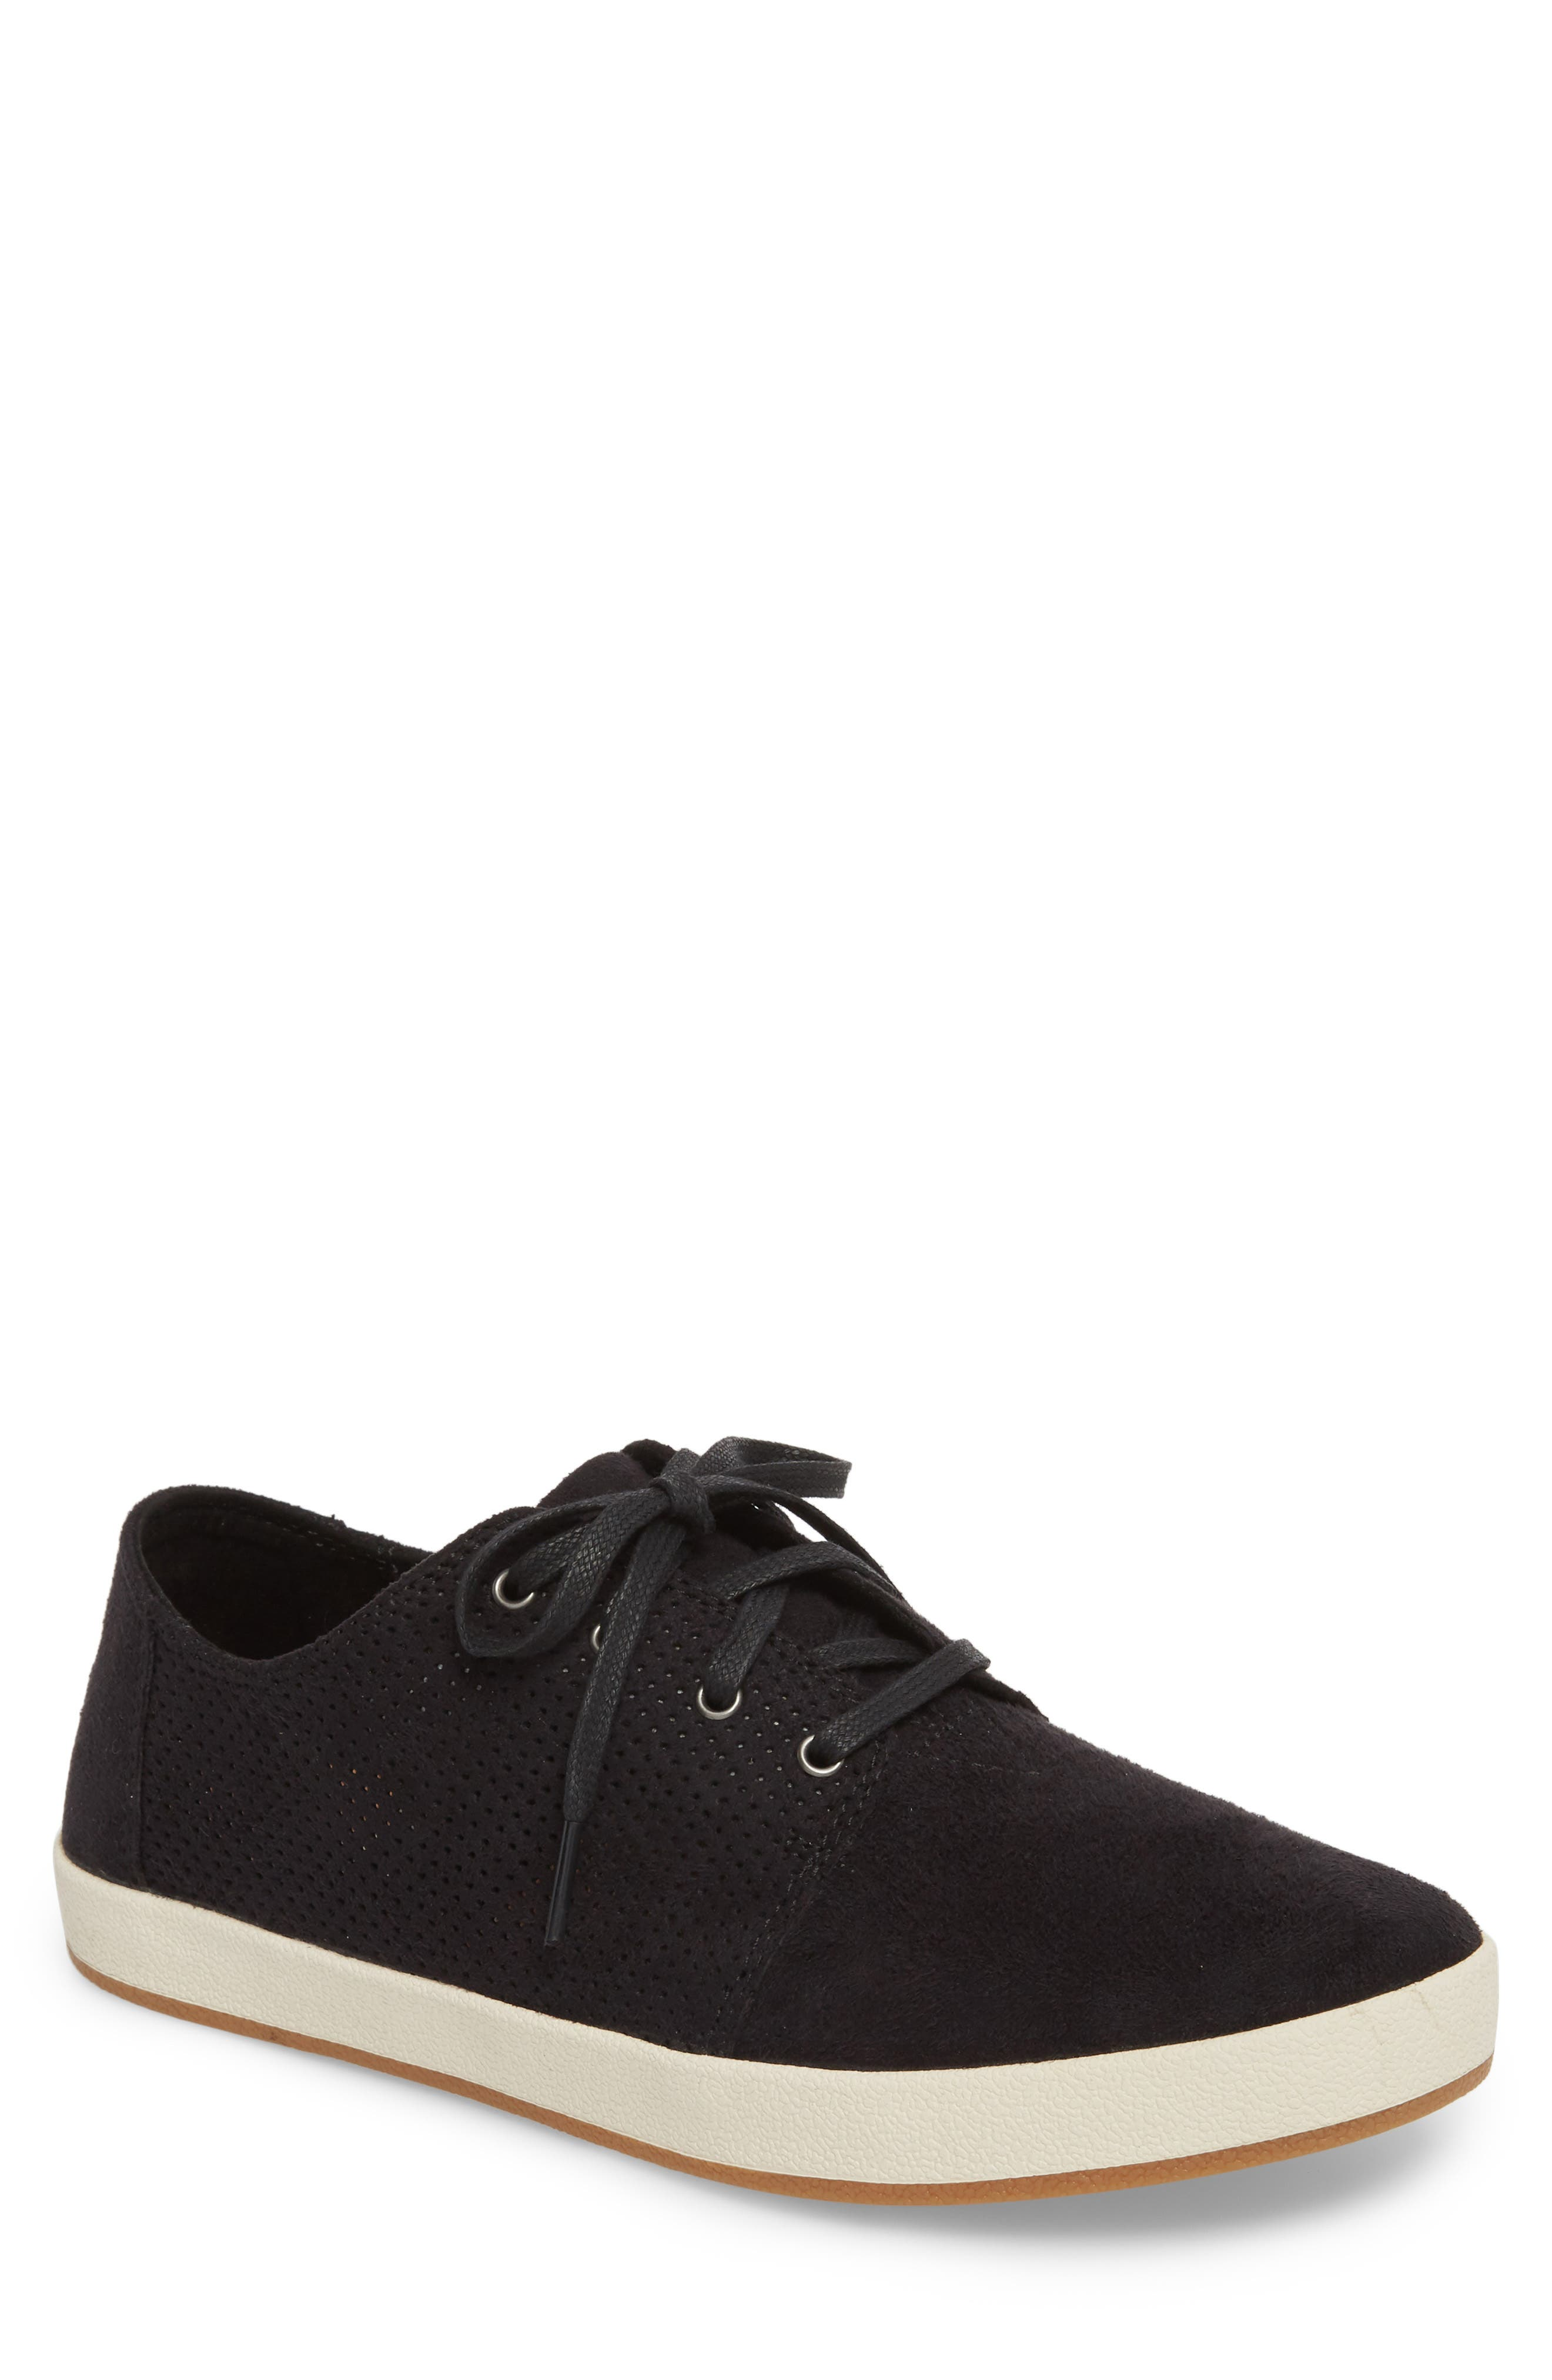 TOMS,                             Payton Perforated Sneaker,                             Main thumbnail 1, color,                             001